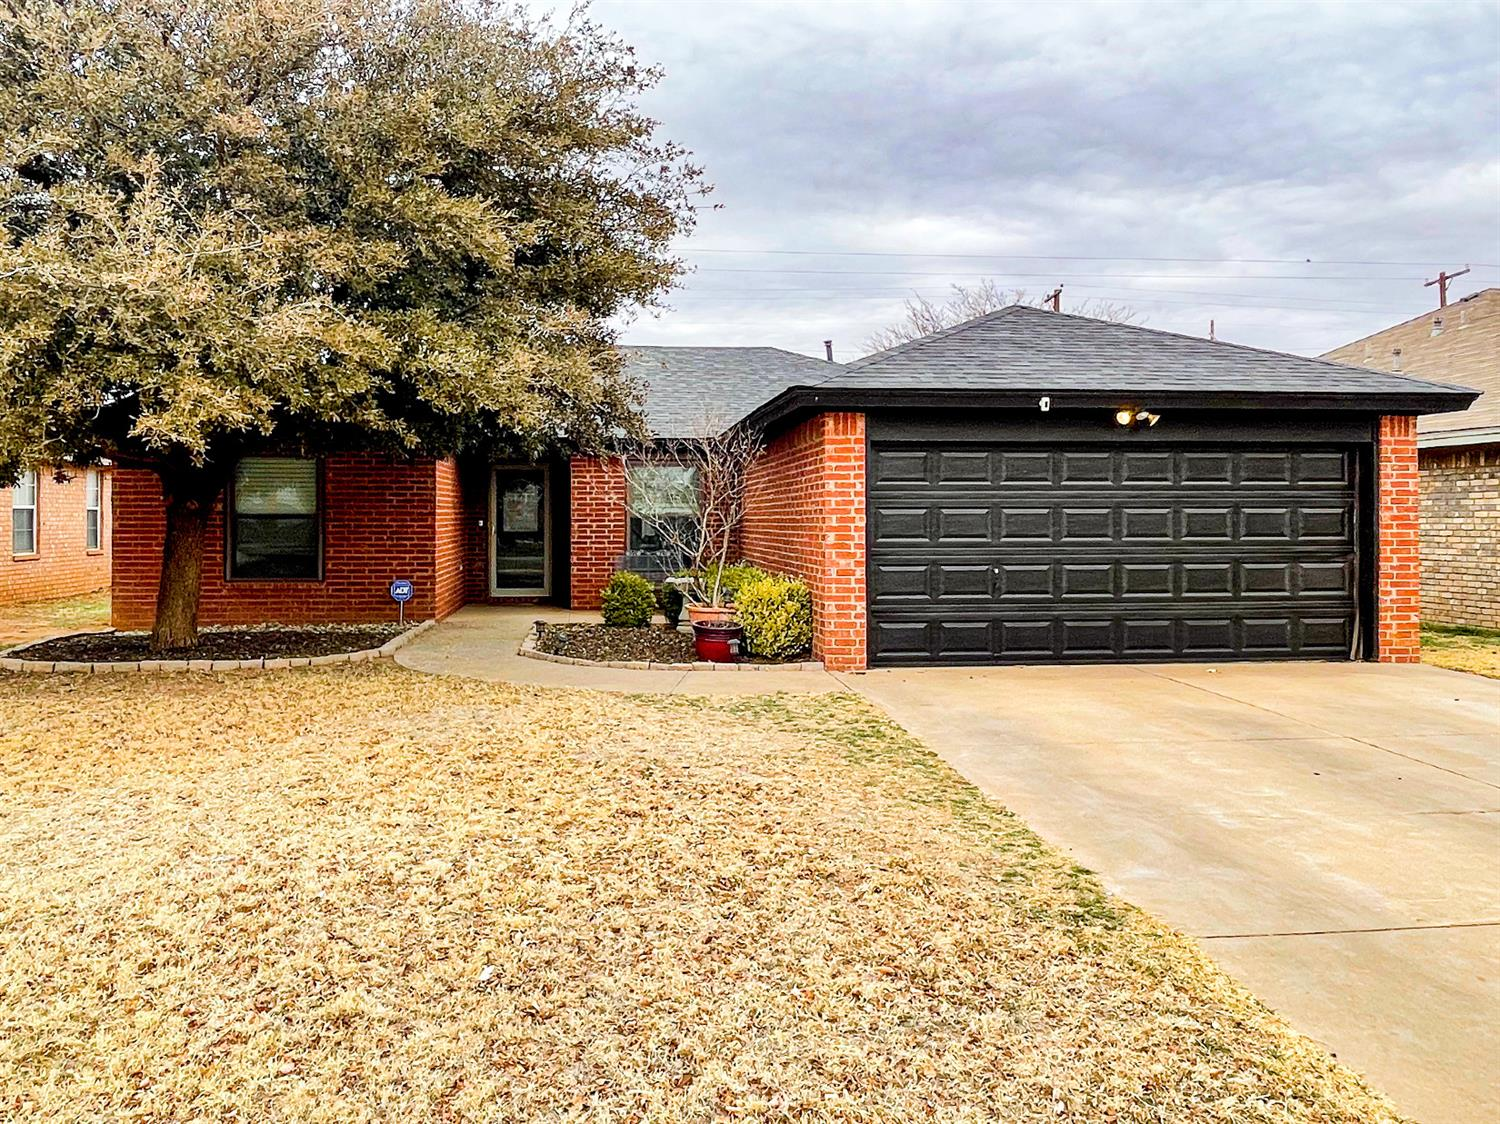 This inviting 3/2/2 single family home is on a quiet double cul-de-sac. Enjoy an open concept with an isolated master bedroom. The spacious living room features a corner fireplace and special ceiling. Roberts Elementary and neighborhood park are just minutes away.